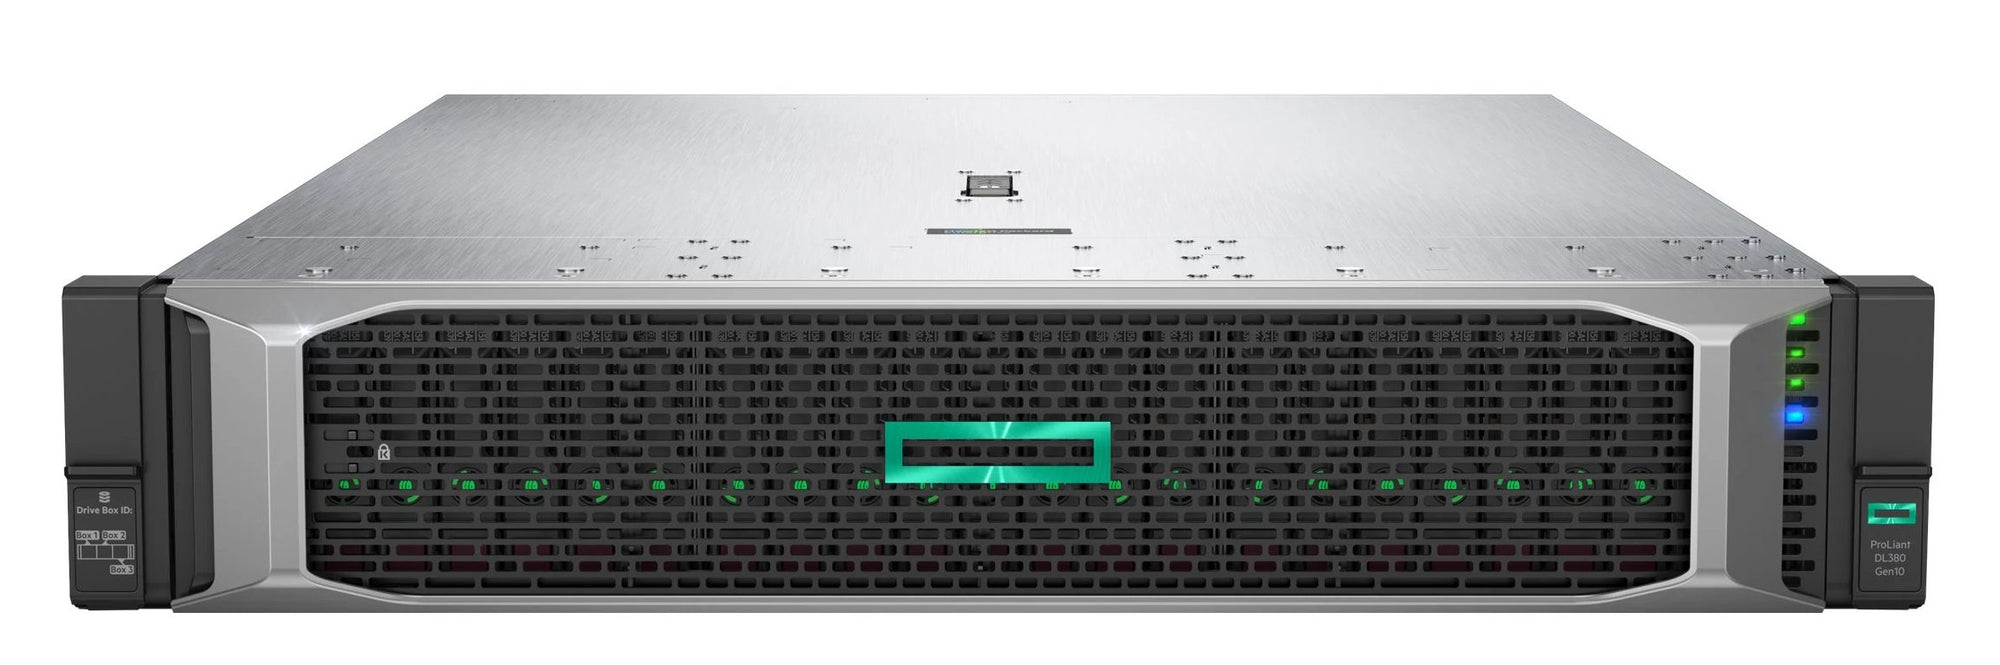 HPE ProLiant DL380 Gen10 CTO Rack Server